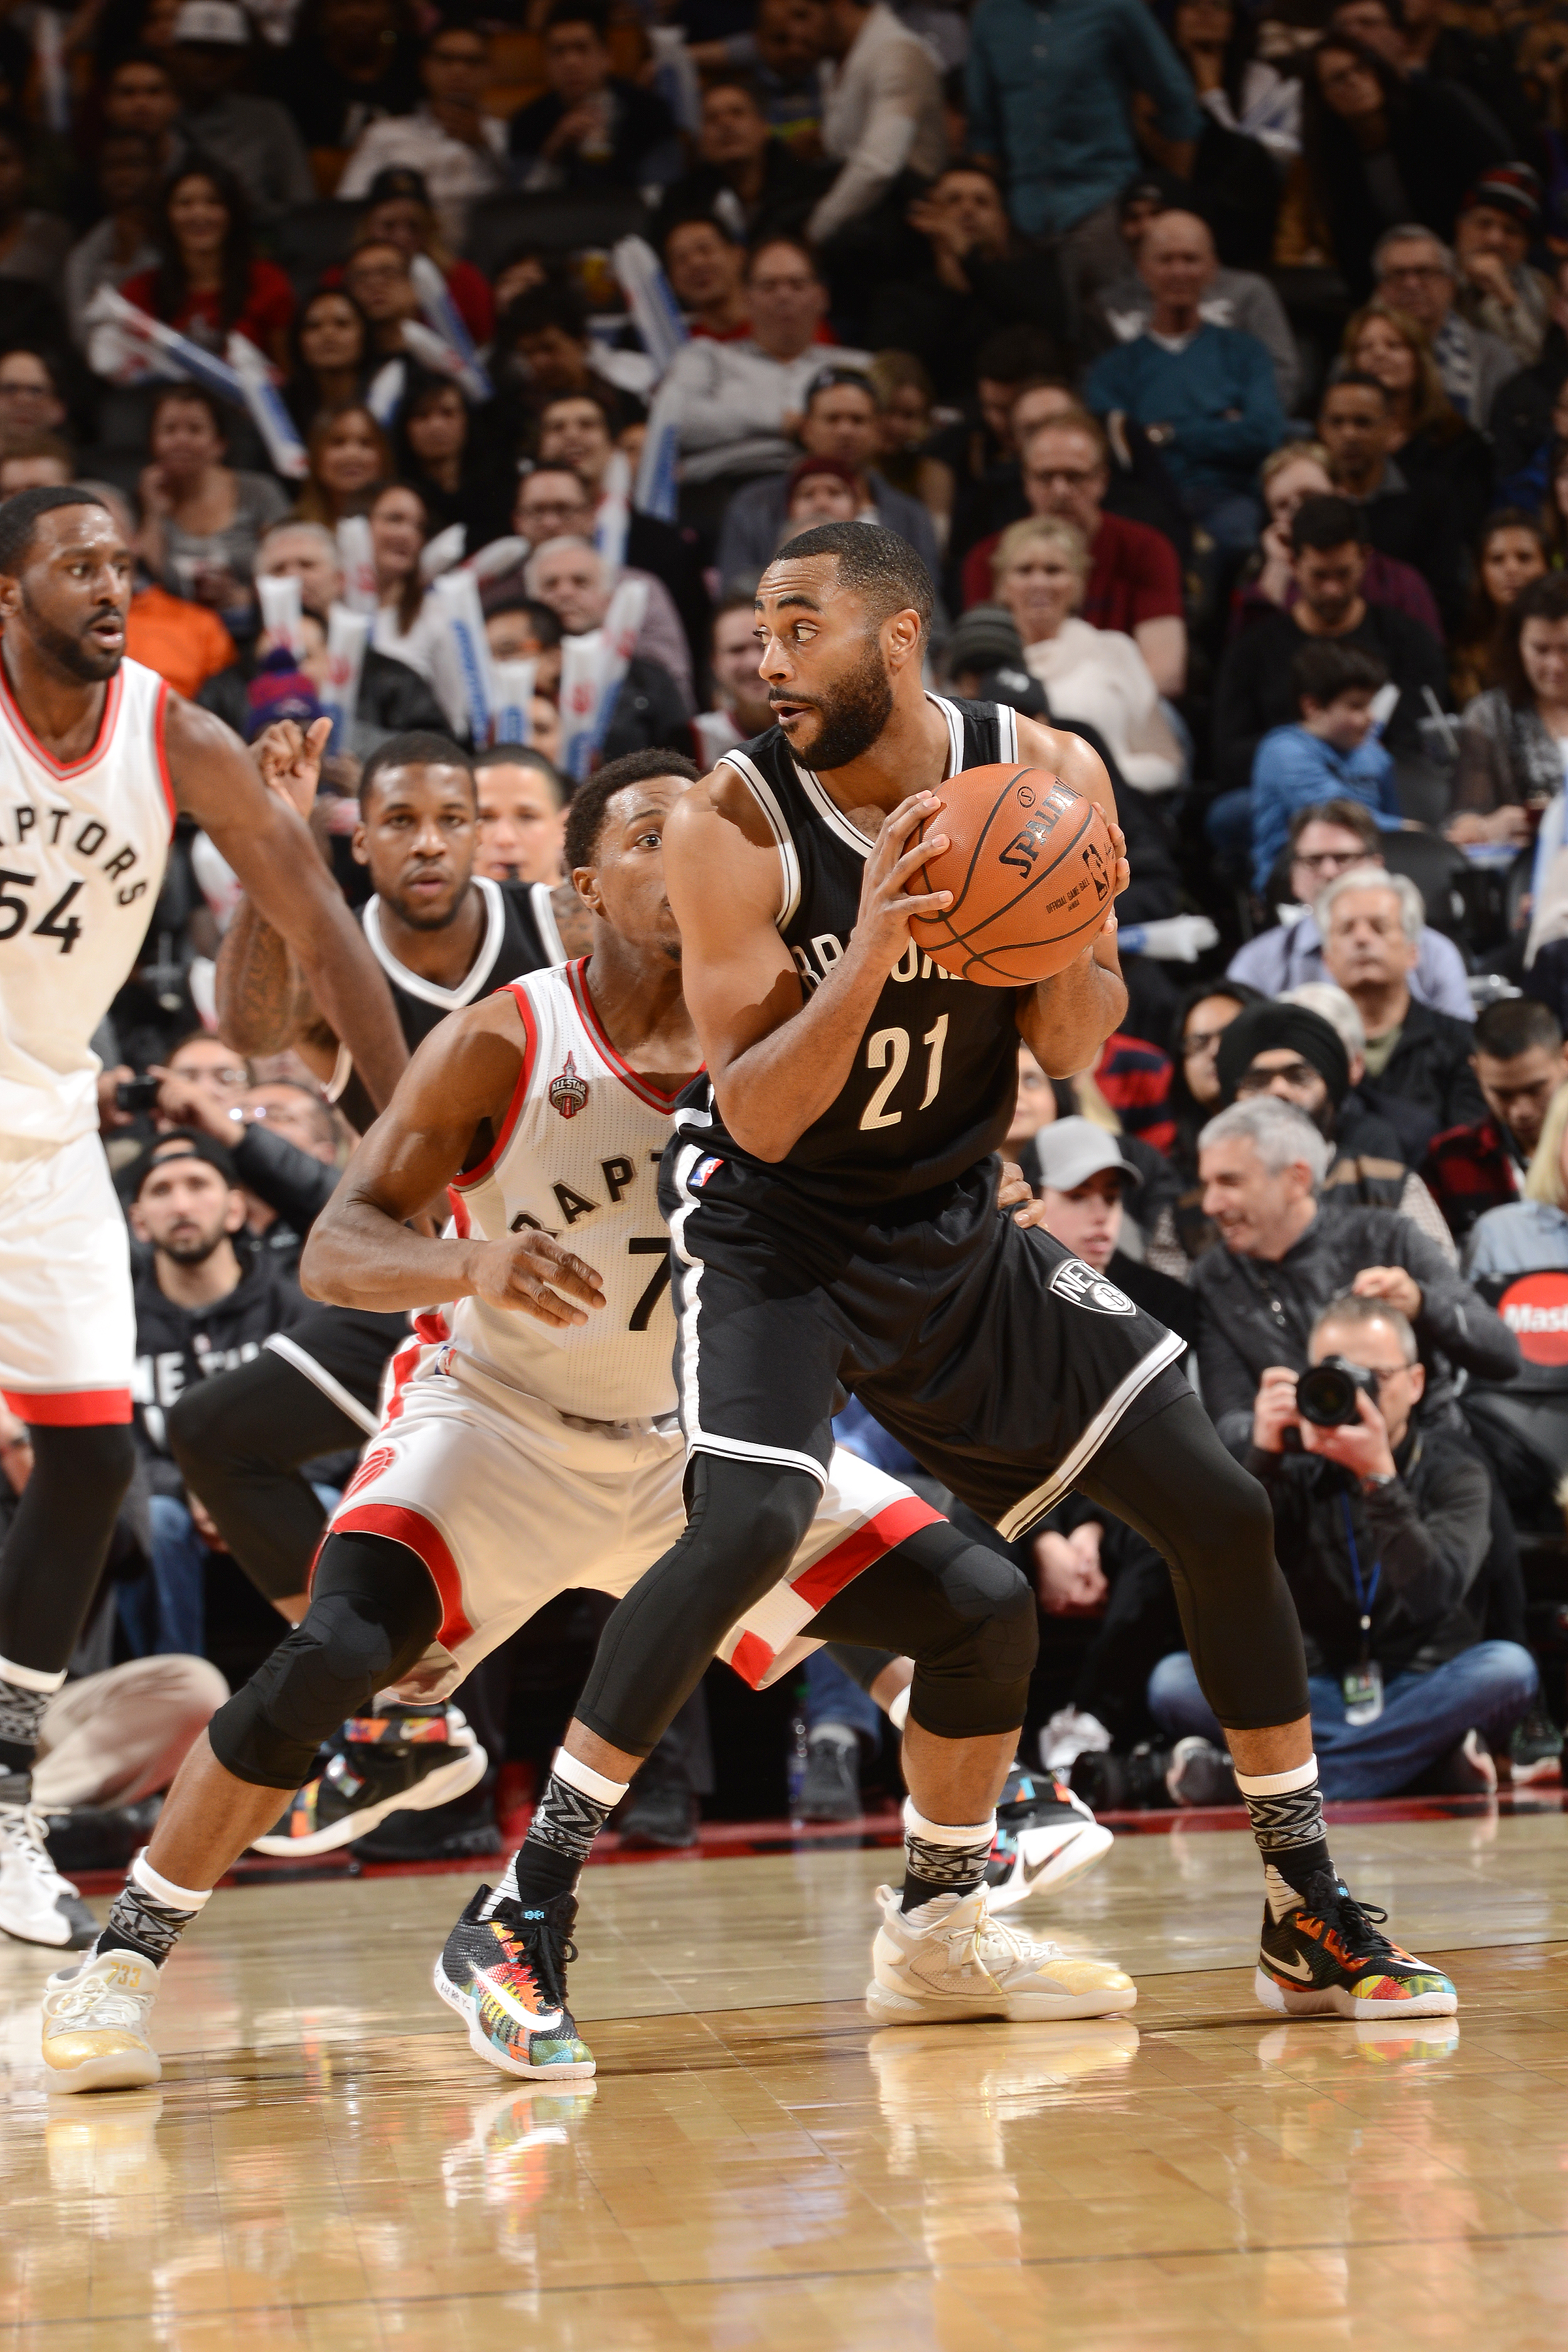 TORONTO, CANADA - JANUARY 18: Wayne Ellington #21 of the Brooklyn Nets handles the ball during the game against the Toronto Raptors on January 18, 2016 at the Air Canada Centre in Toronto, Ontario, Canada.  (Photo by Ron Turenne/NBAE via Getty Images)